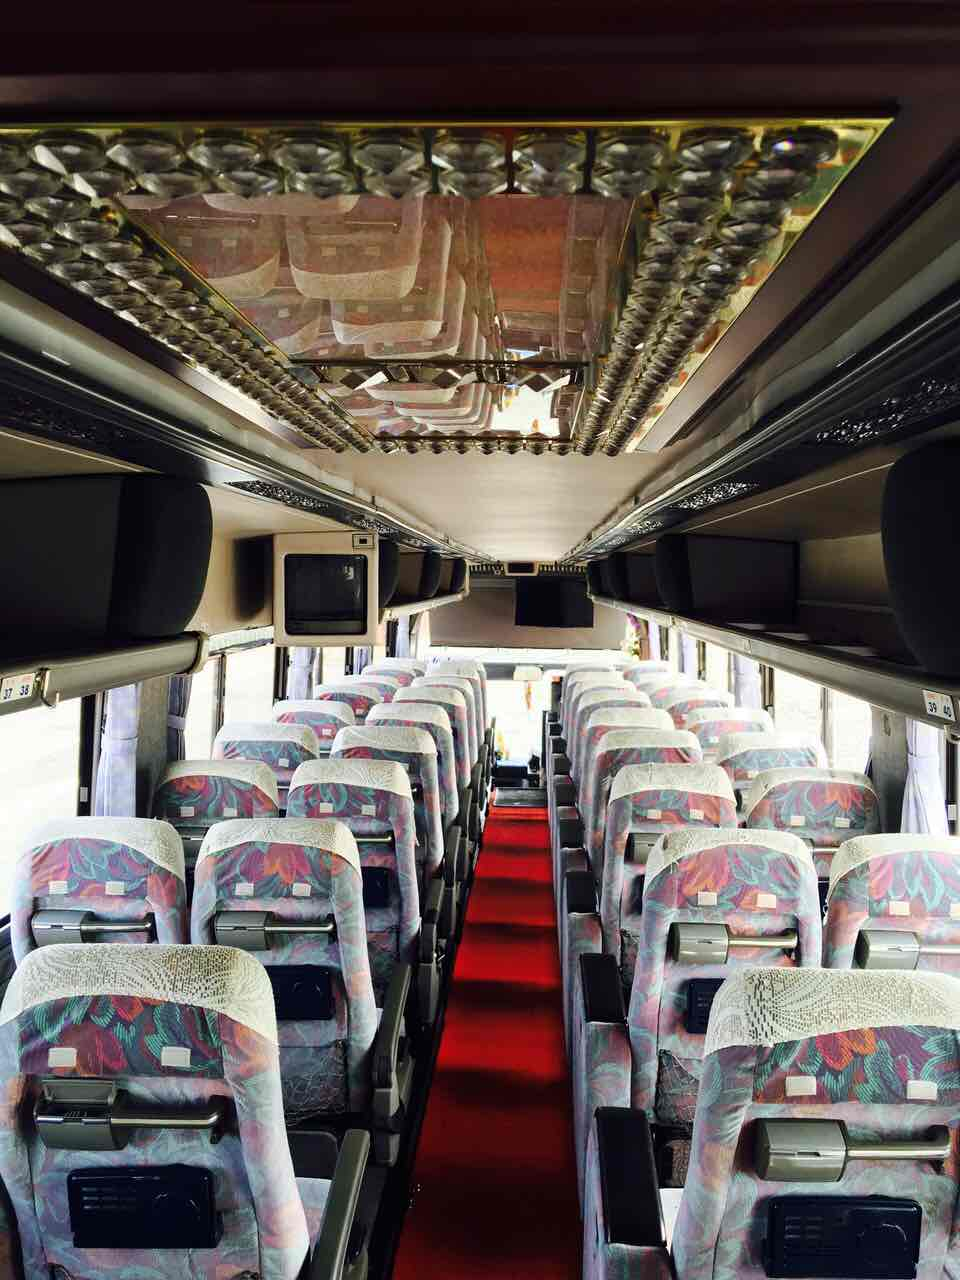 45 seater volvo bus inside